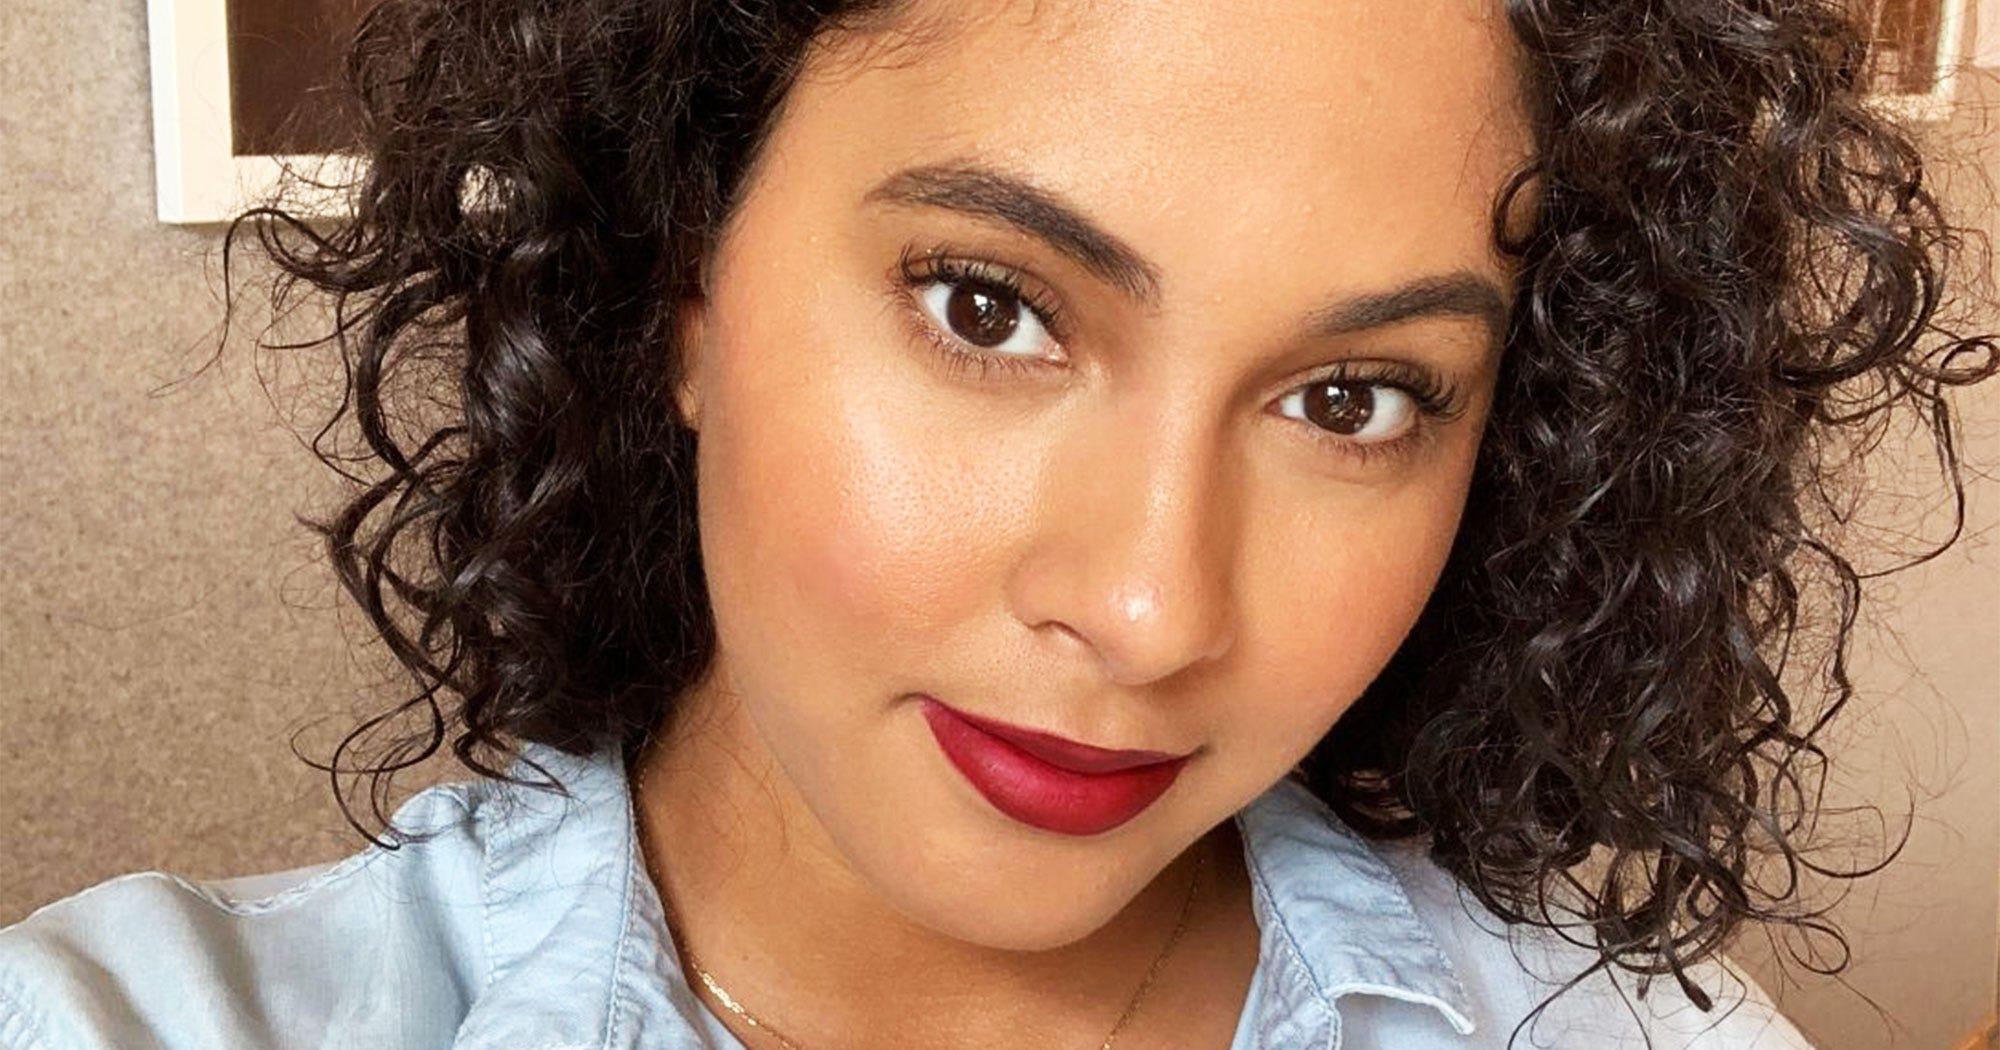 I Tried 5 Top-Rated Long-Wear Lipsticks — & This One Didn't Budge